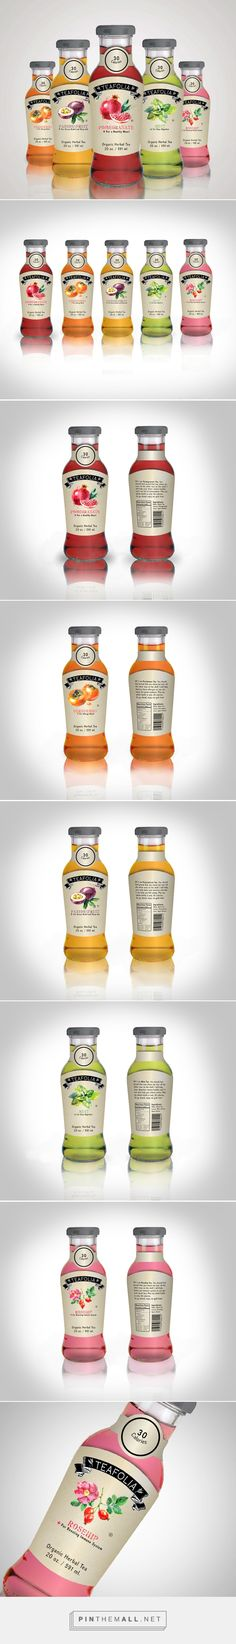 Teafolia Iced Tea by Rachel Moskowitz. Source: Behance. Pin curated by #SFields99 #packaging #design